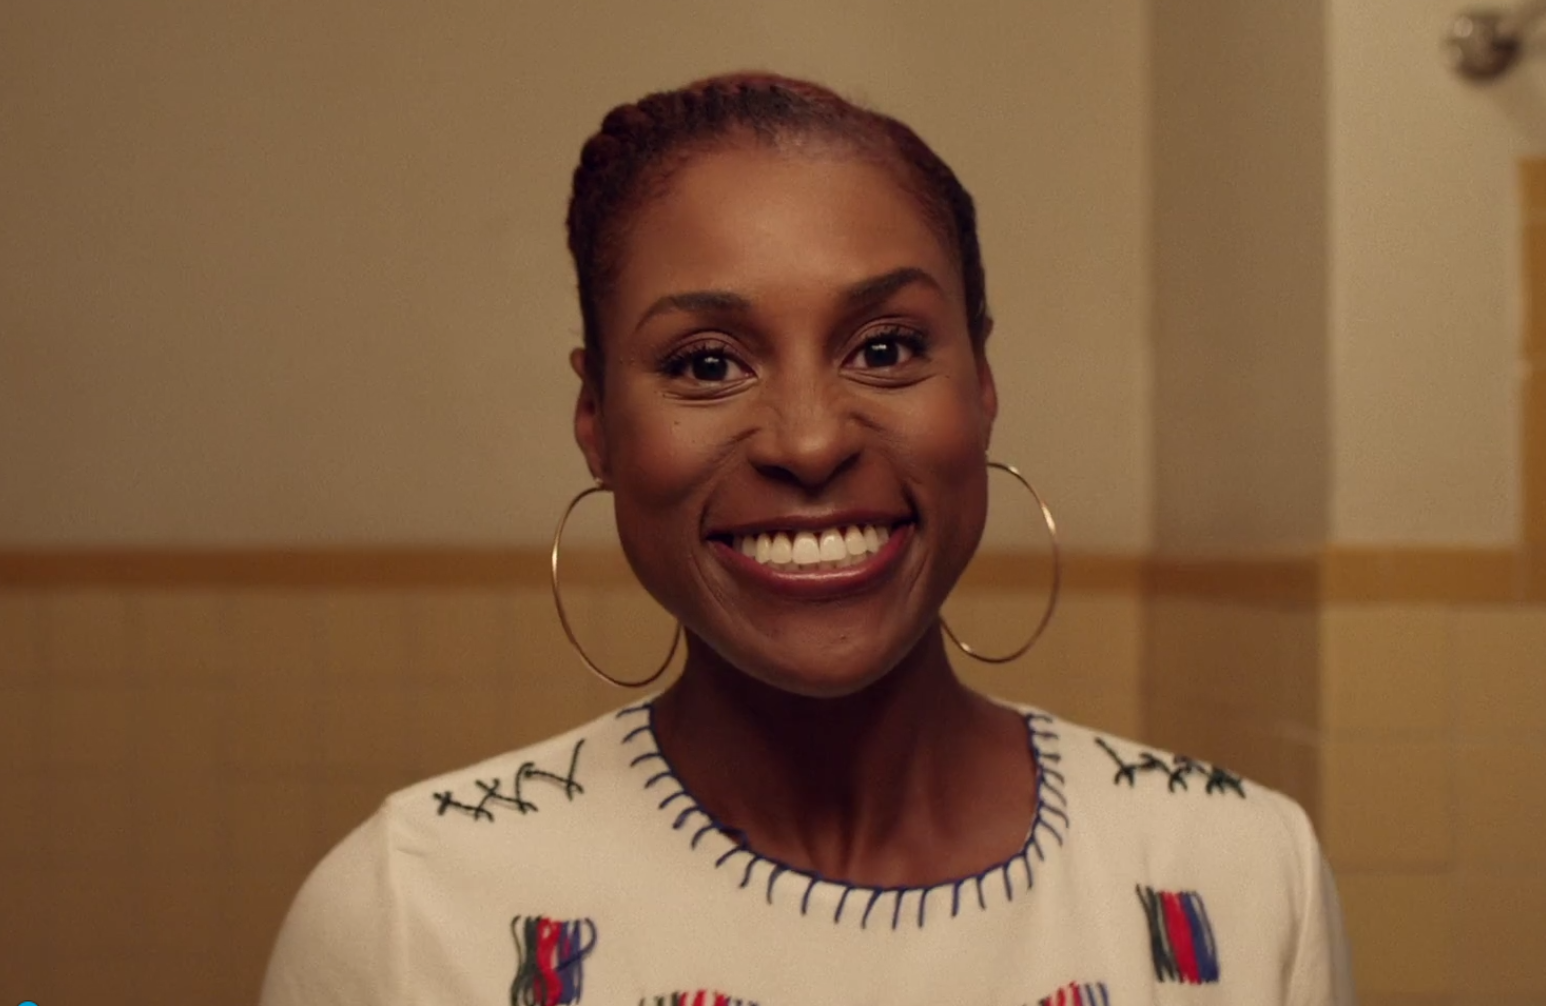 Flat twist halo Issa Rae wore in HBO Insecure Episode 6 Hella Blow